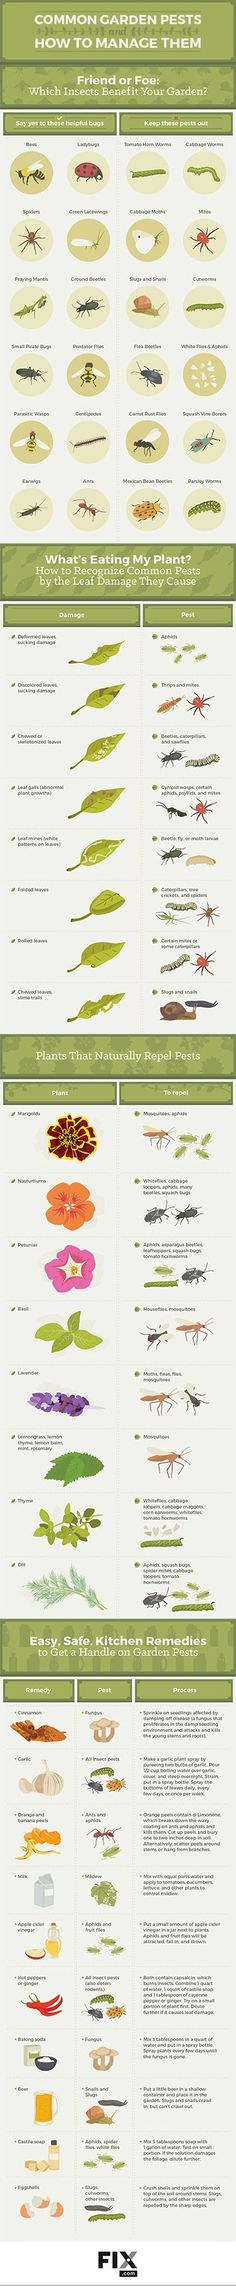 insect identification chart gardens garden insects and insect identification. Black Bedroom Furniture Sets. Home Design Ideas